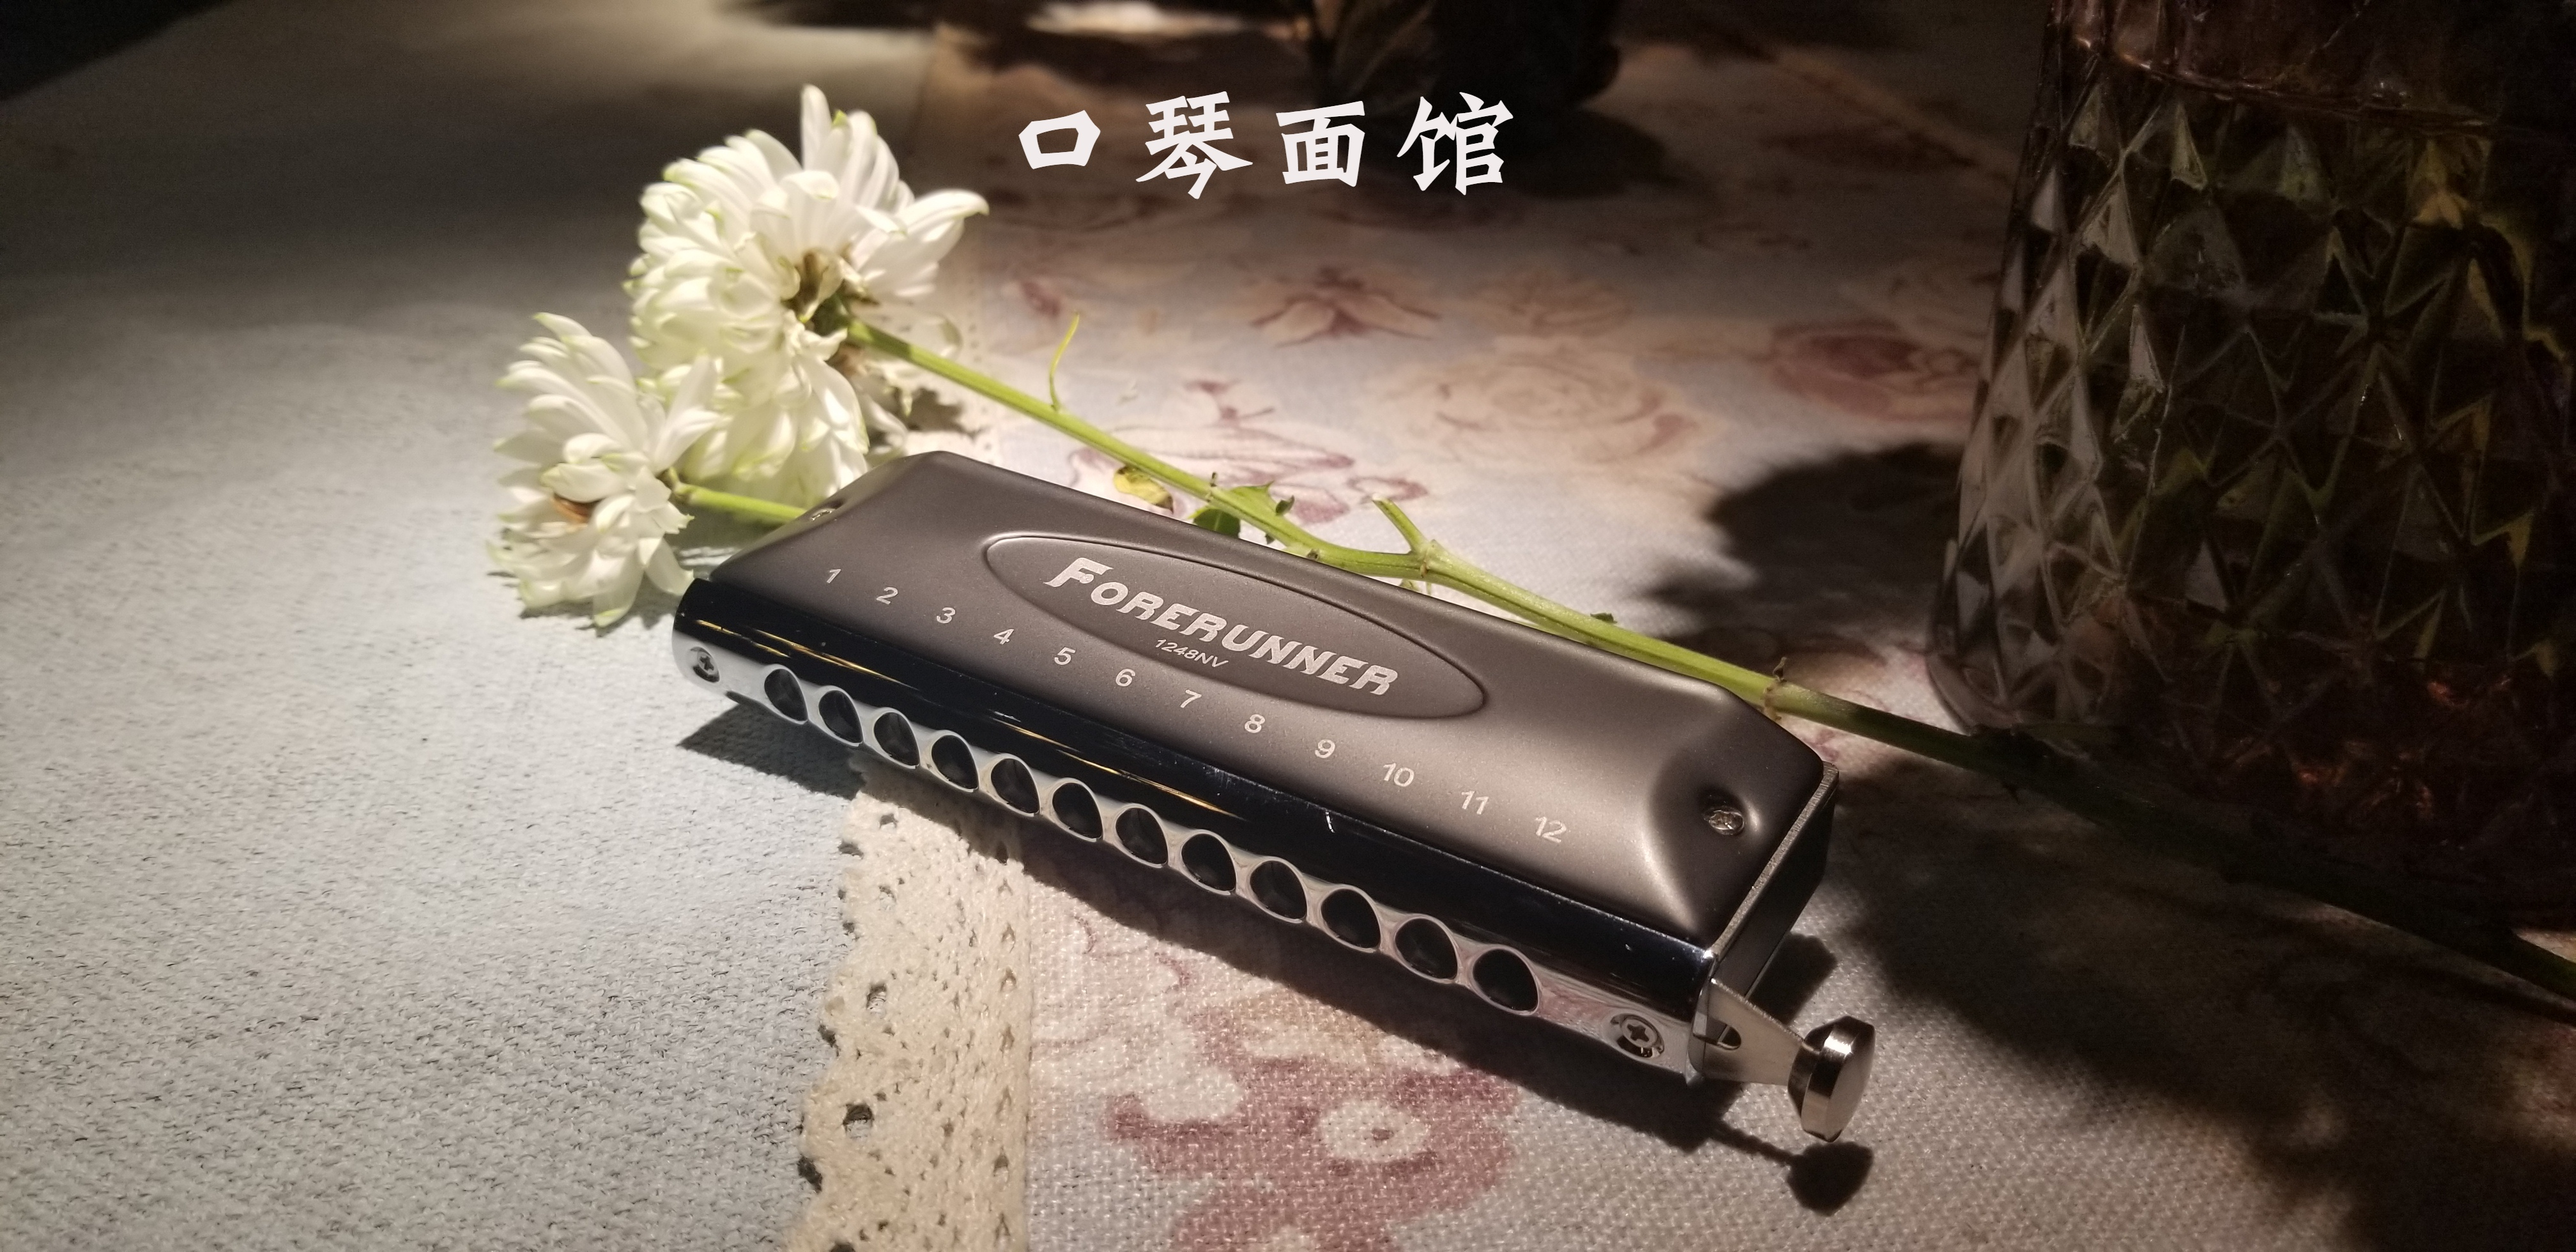 [harmonica noodle shop] Dongfang Ding, the forerunner of diaphragm free chromatic harmonica / 12 holes / Introduction/